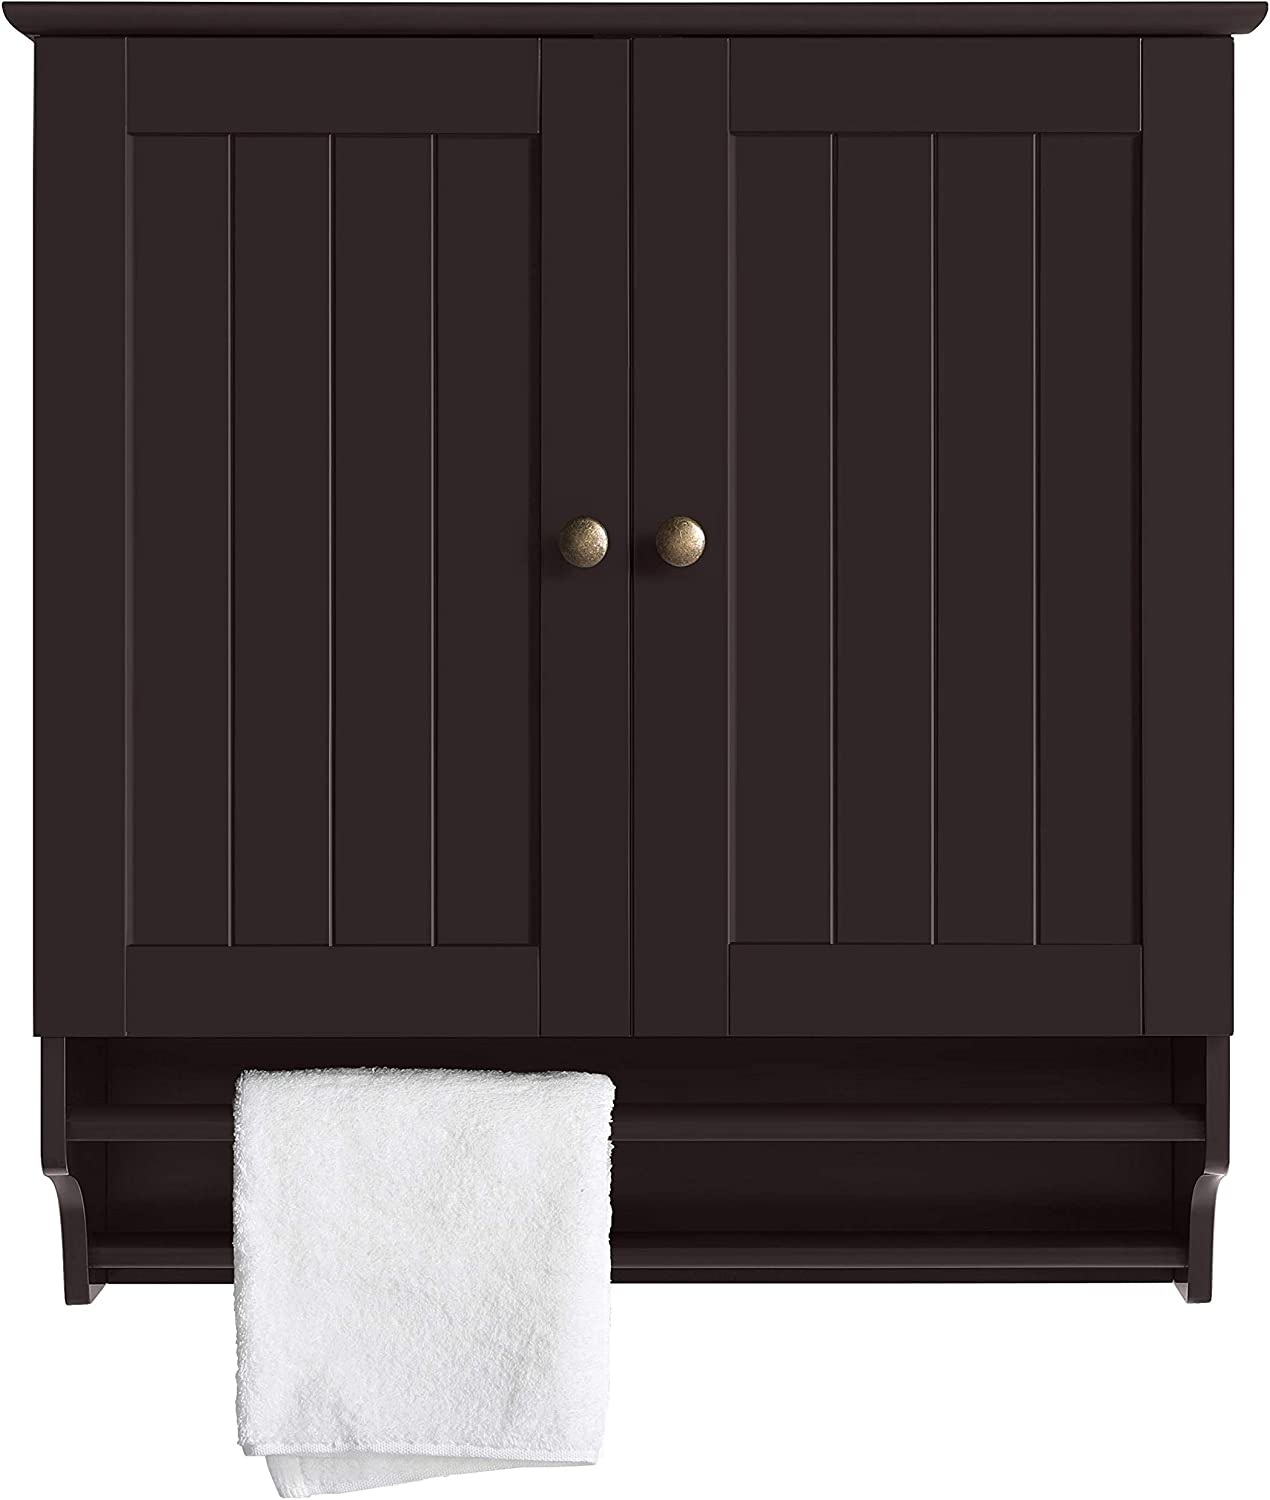 YAHEETECH Bathroom Wall Storage Cabinet, Over Toilet Organizer Space Saver Kitchen Doule Door Cupboard with 2 Hanging Bars, Espresso